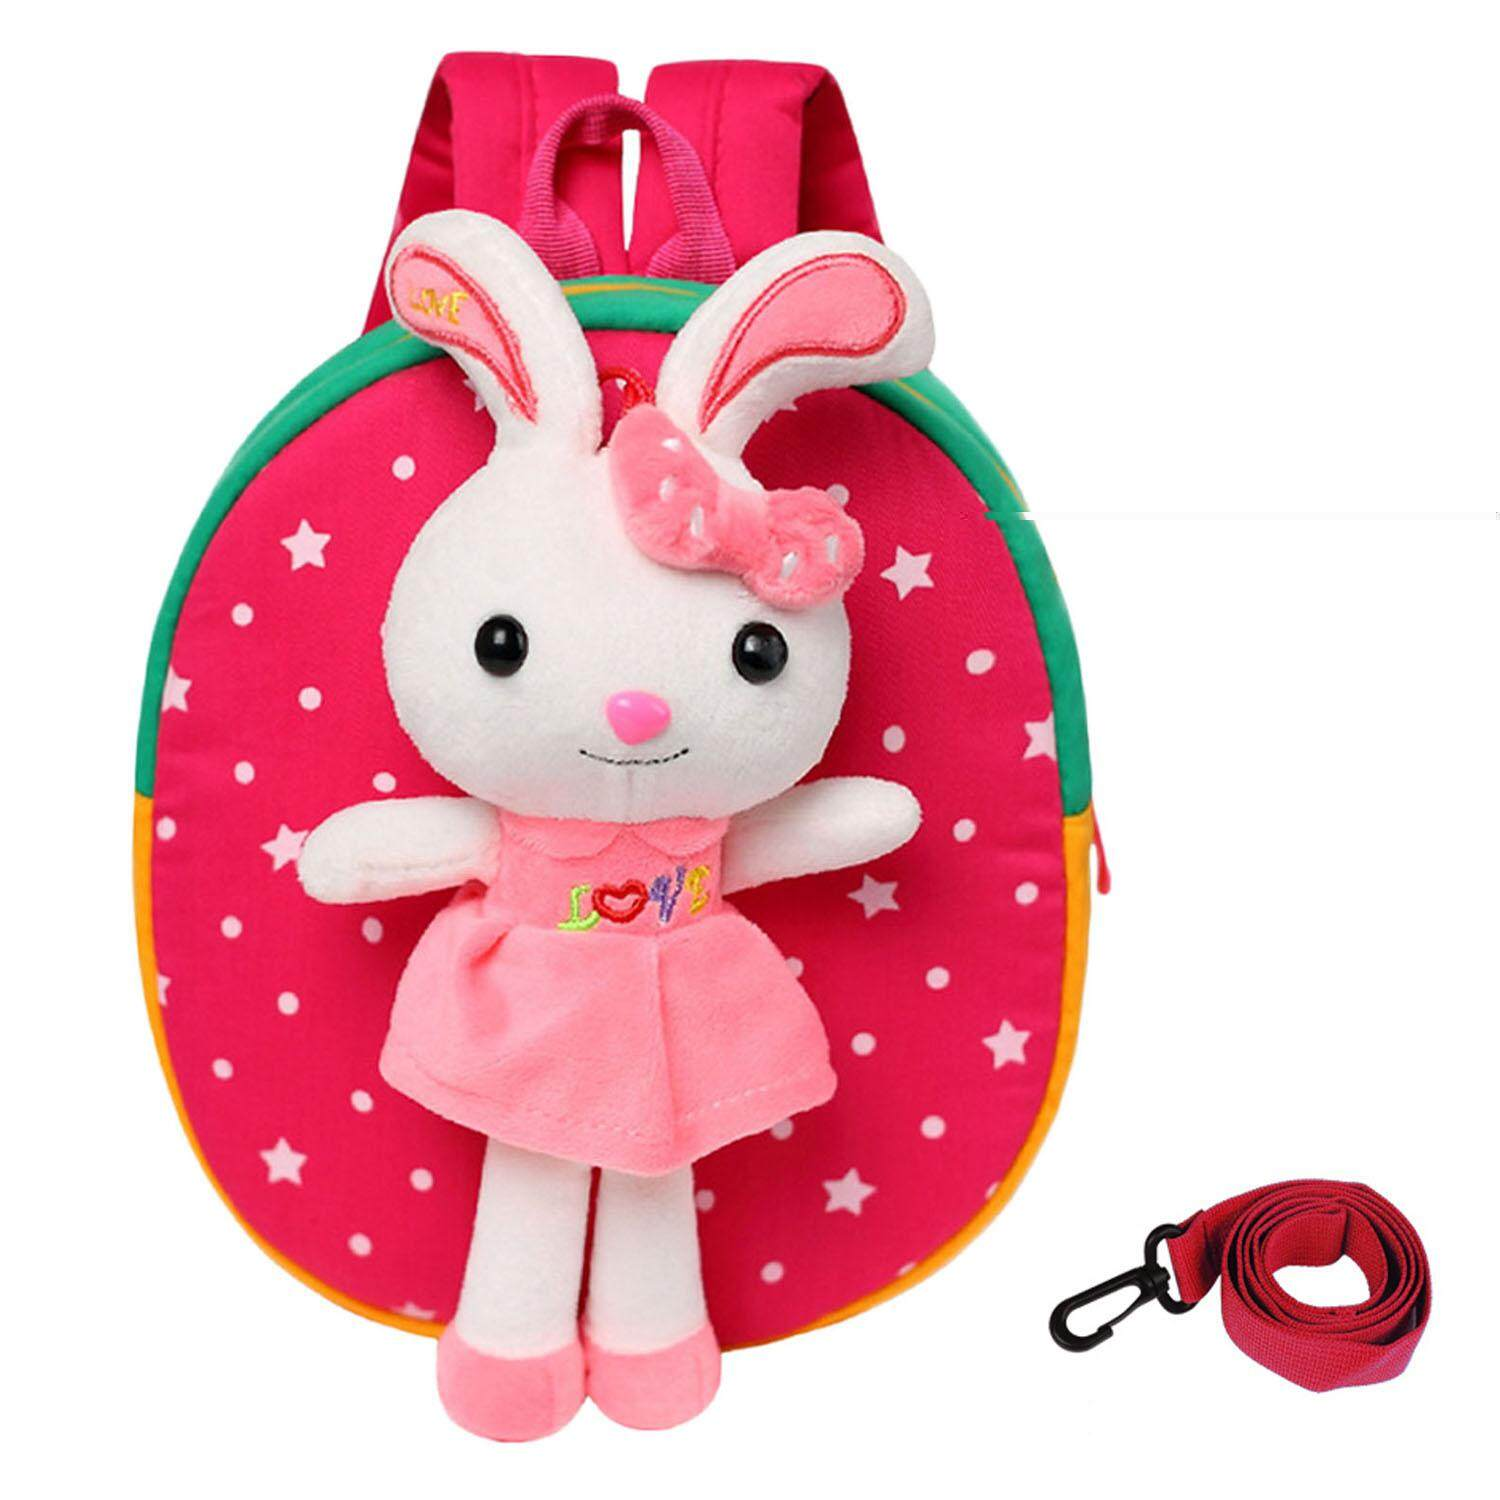 Boys Girls Kids Dinosaur Backpack Safety Anti-lost with Reins Shoulder Bag for Pre-school Kindergarten Outdoor